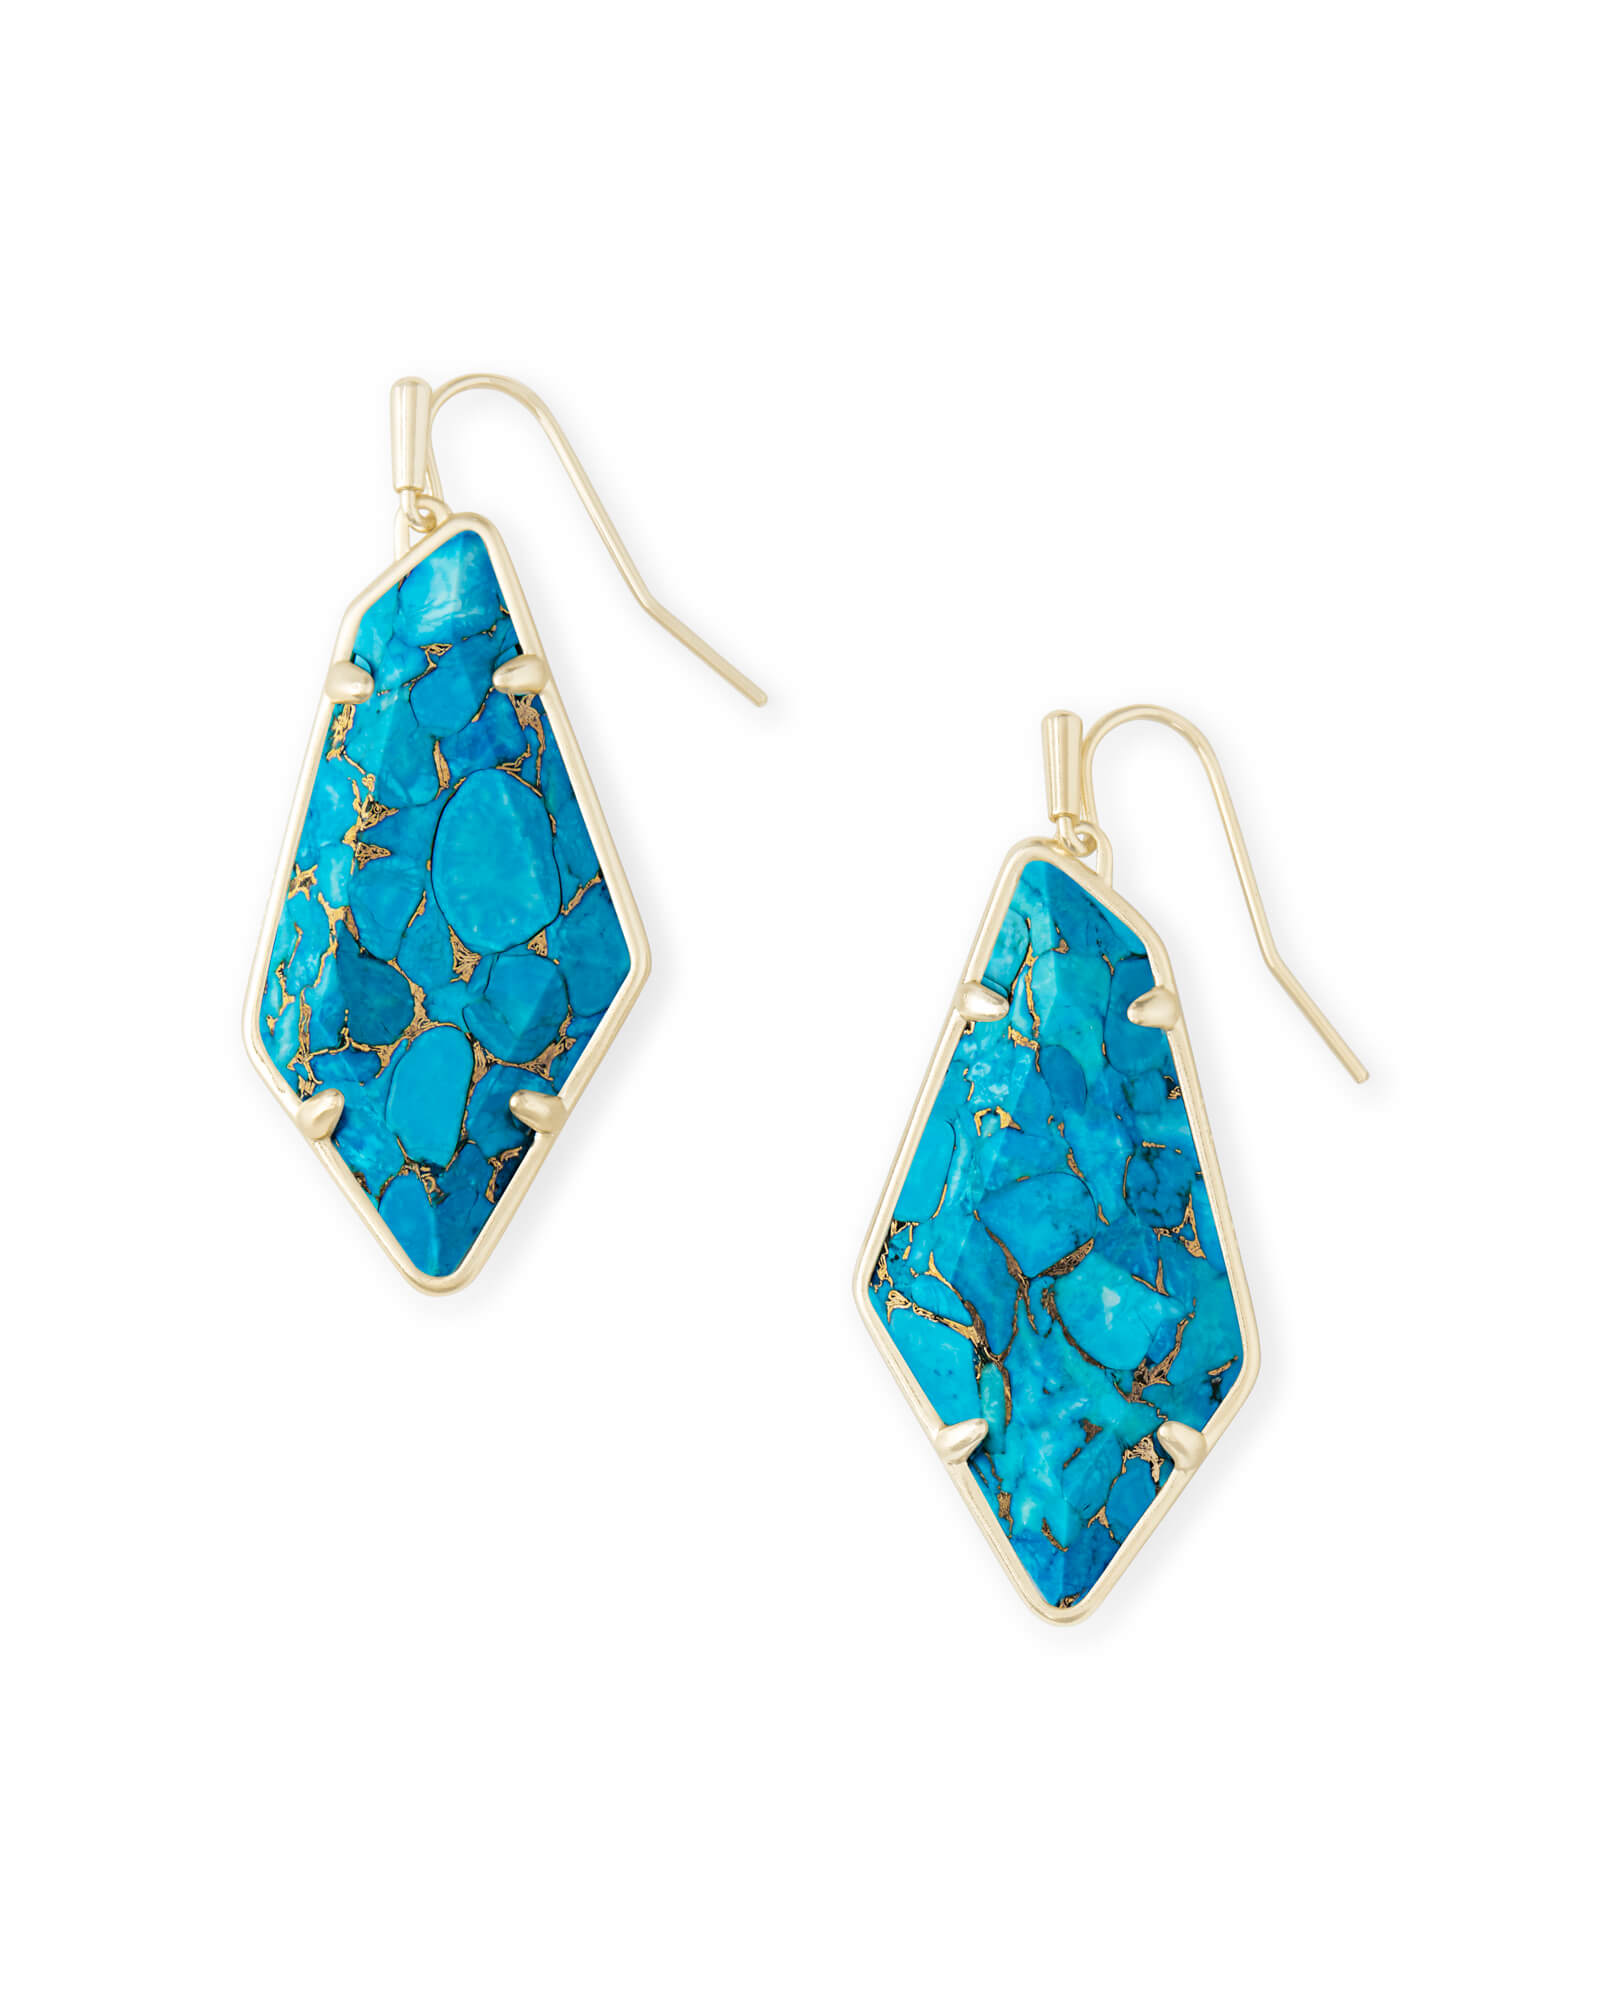 Emmie Gold Drop Earrings in Bronze Veined Turquoise Magnesite